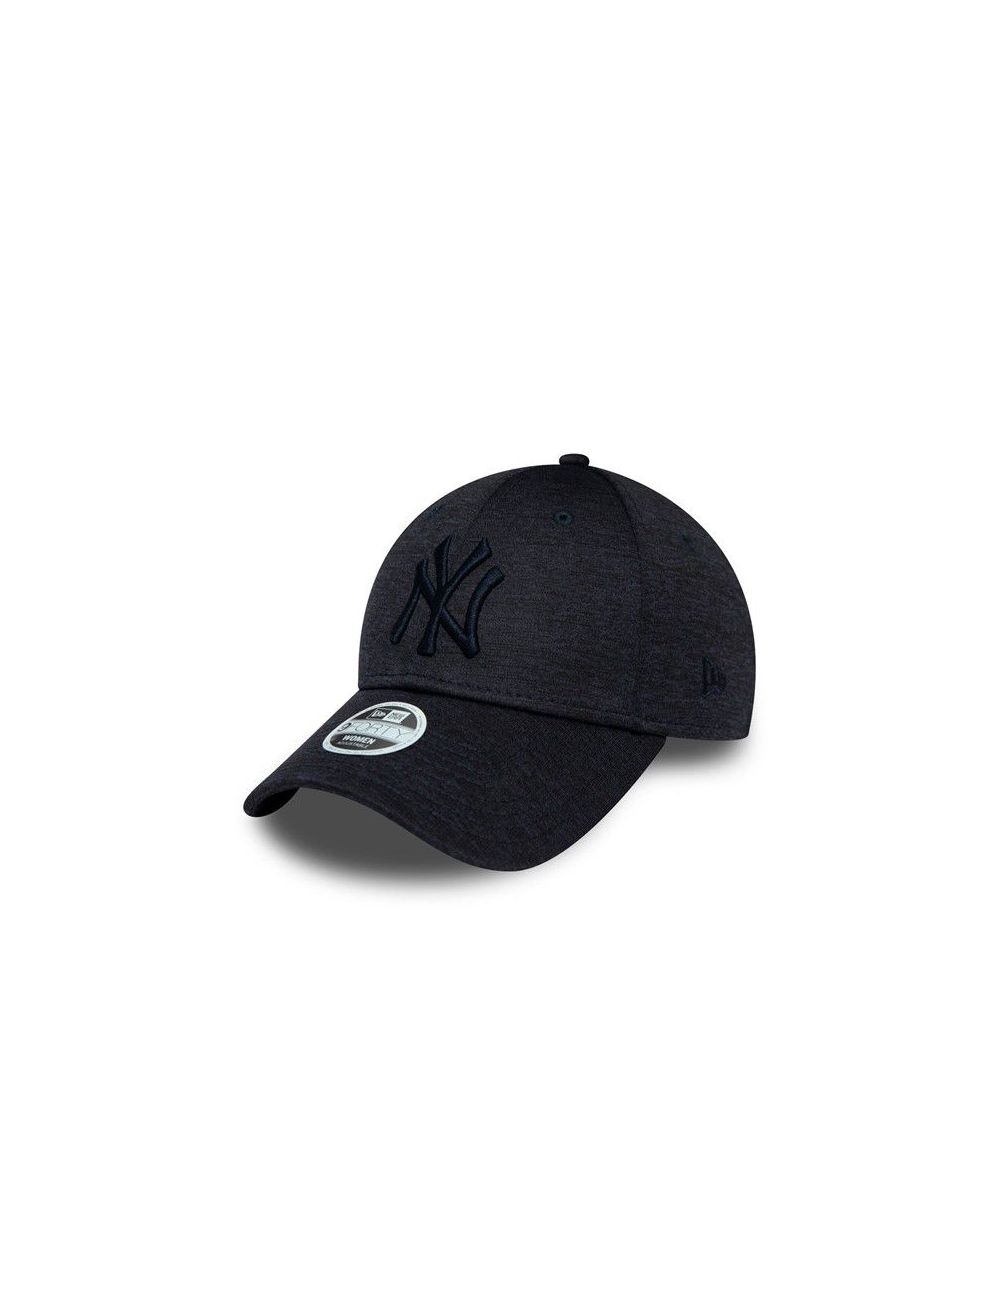 Casquette Femme 9FORTY Jersey New York Yankees